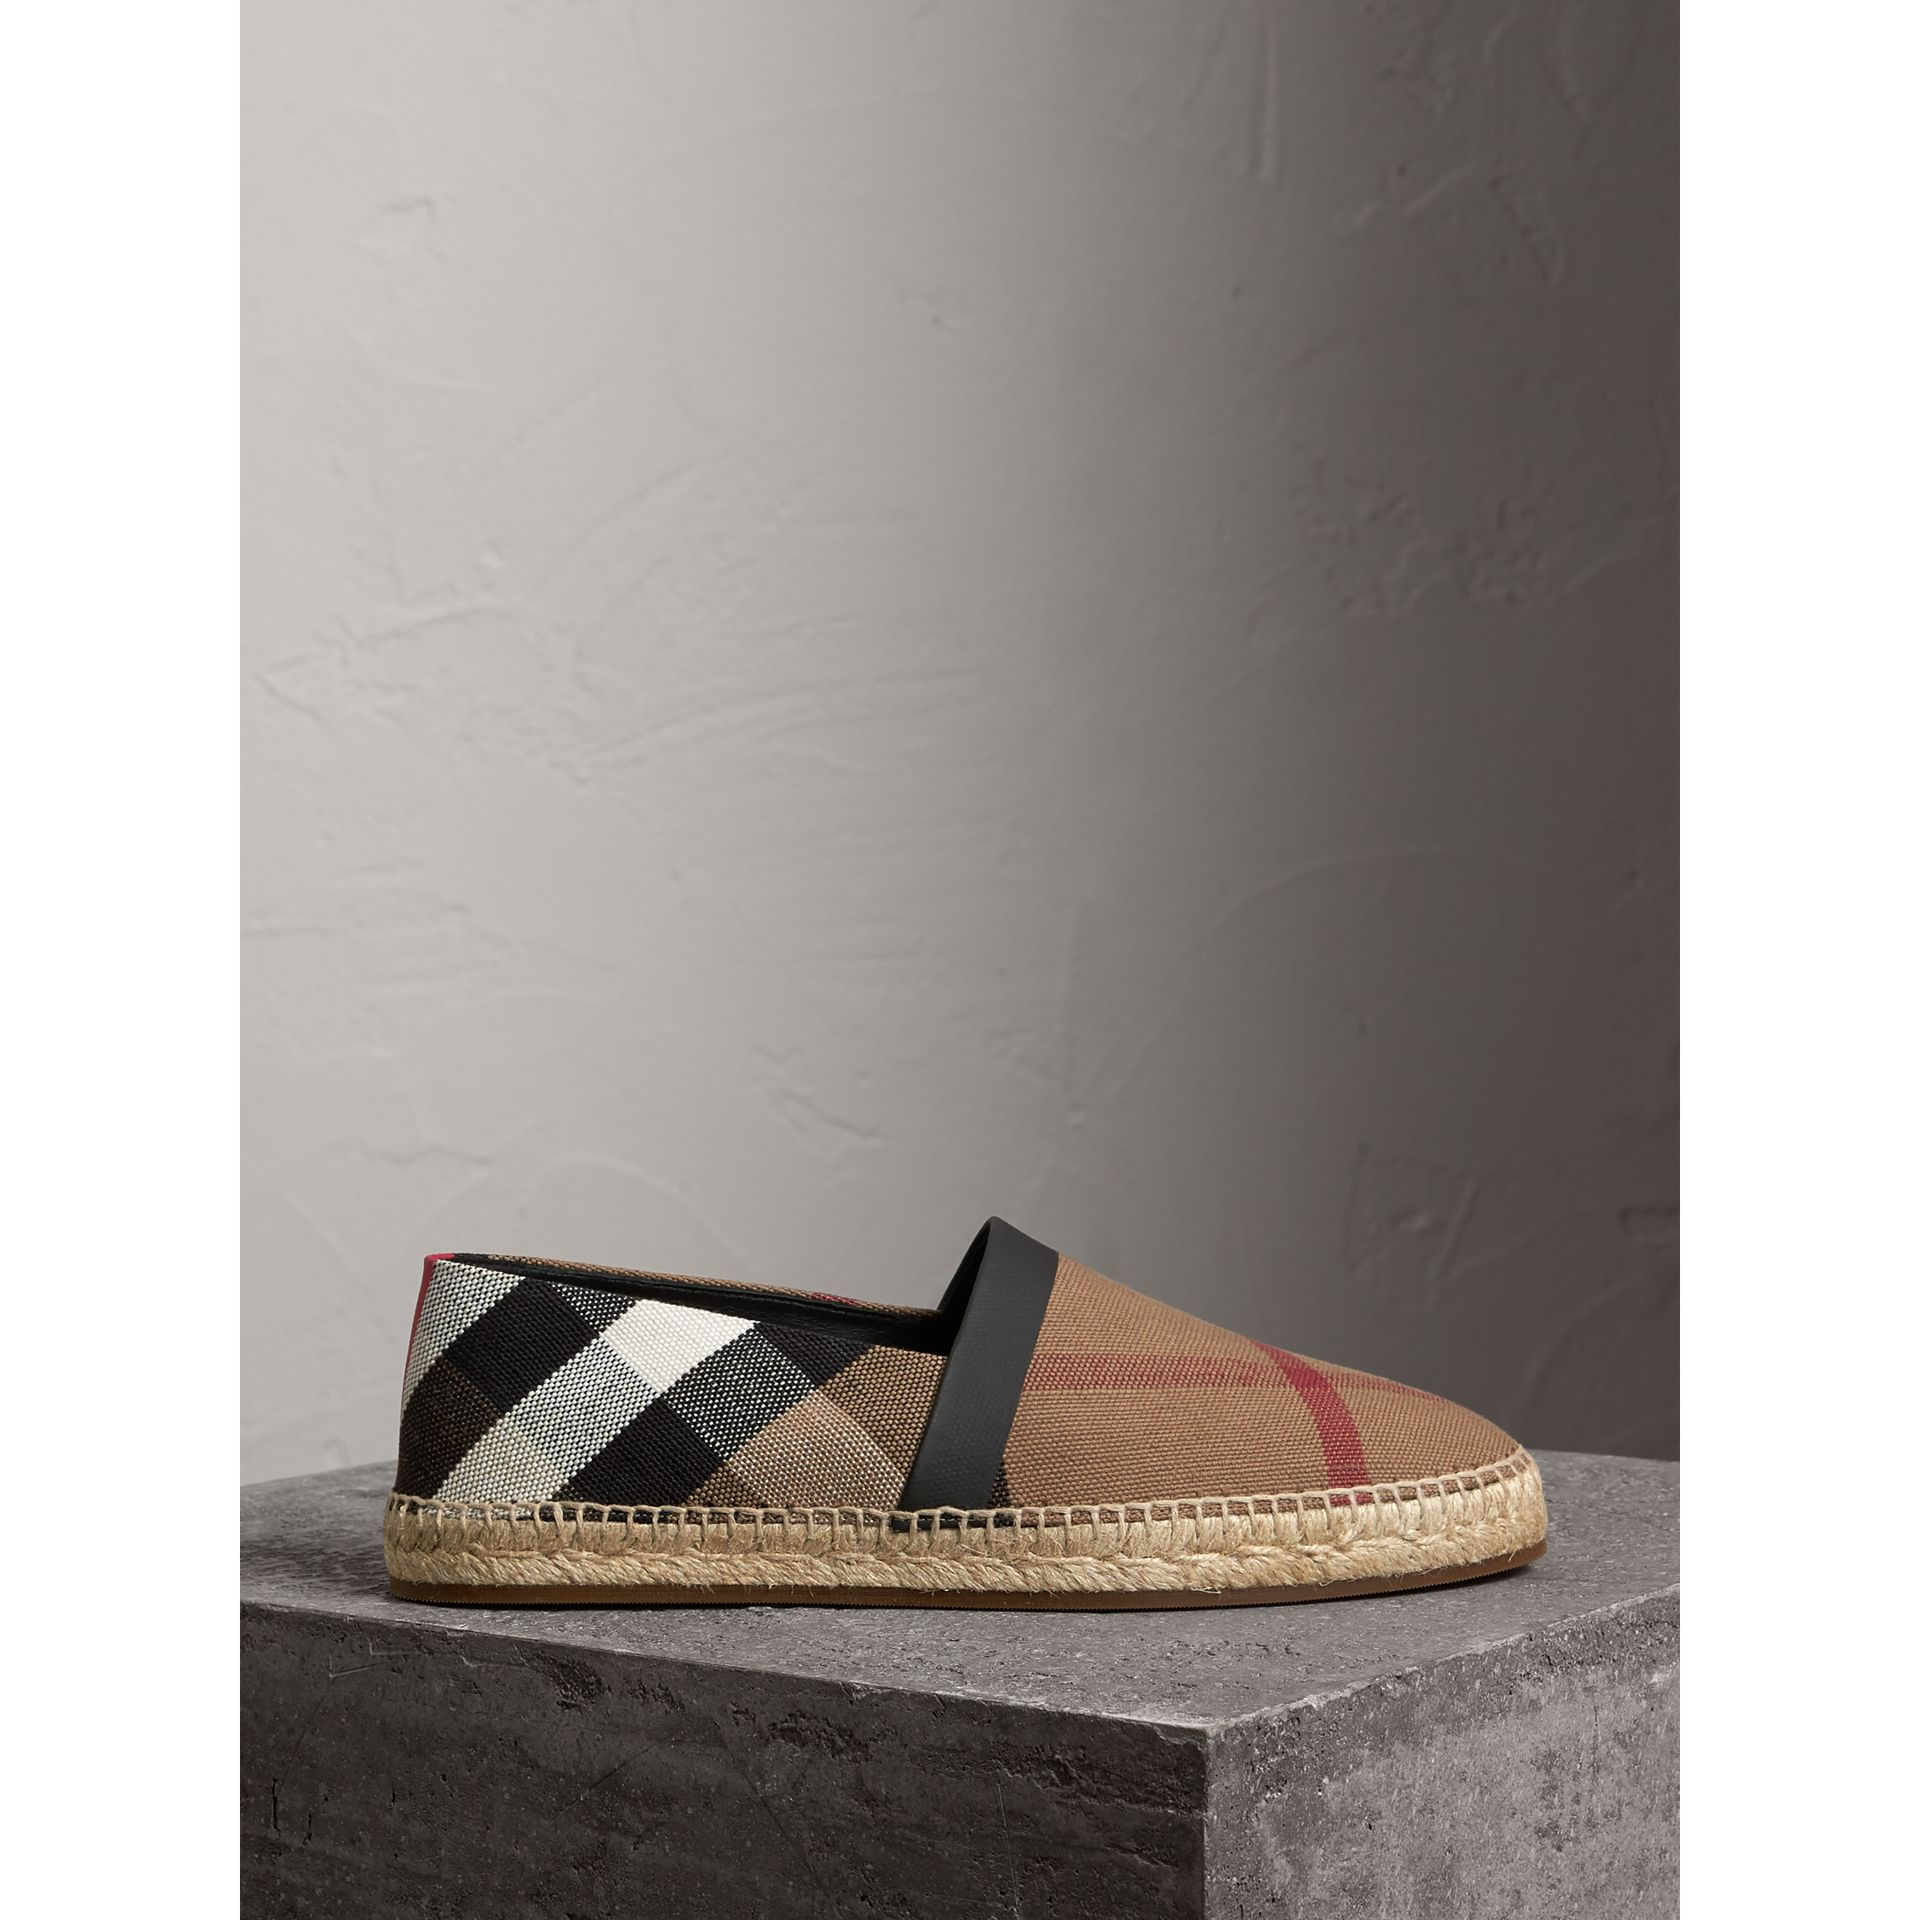 Check Cotton Canvas Seam-sealed Espadrilles in Classic - Men | Burberry Hong Kong - gallery image 3